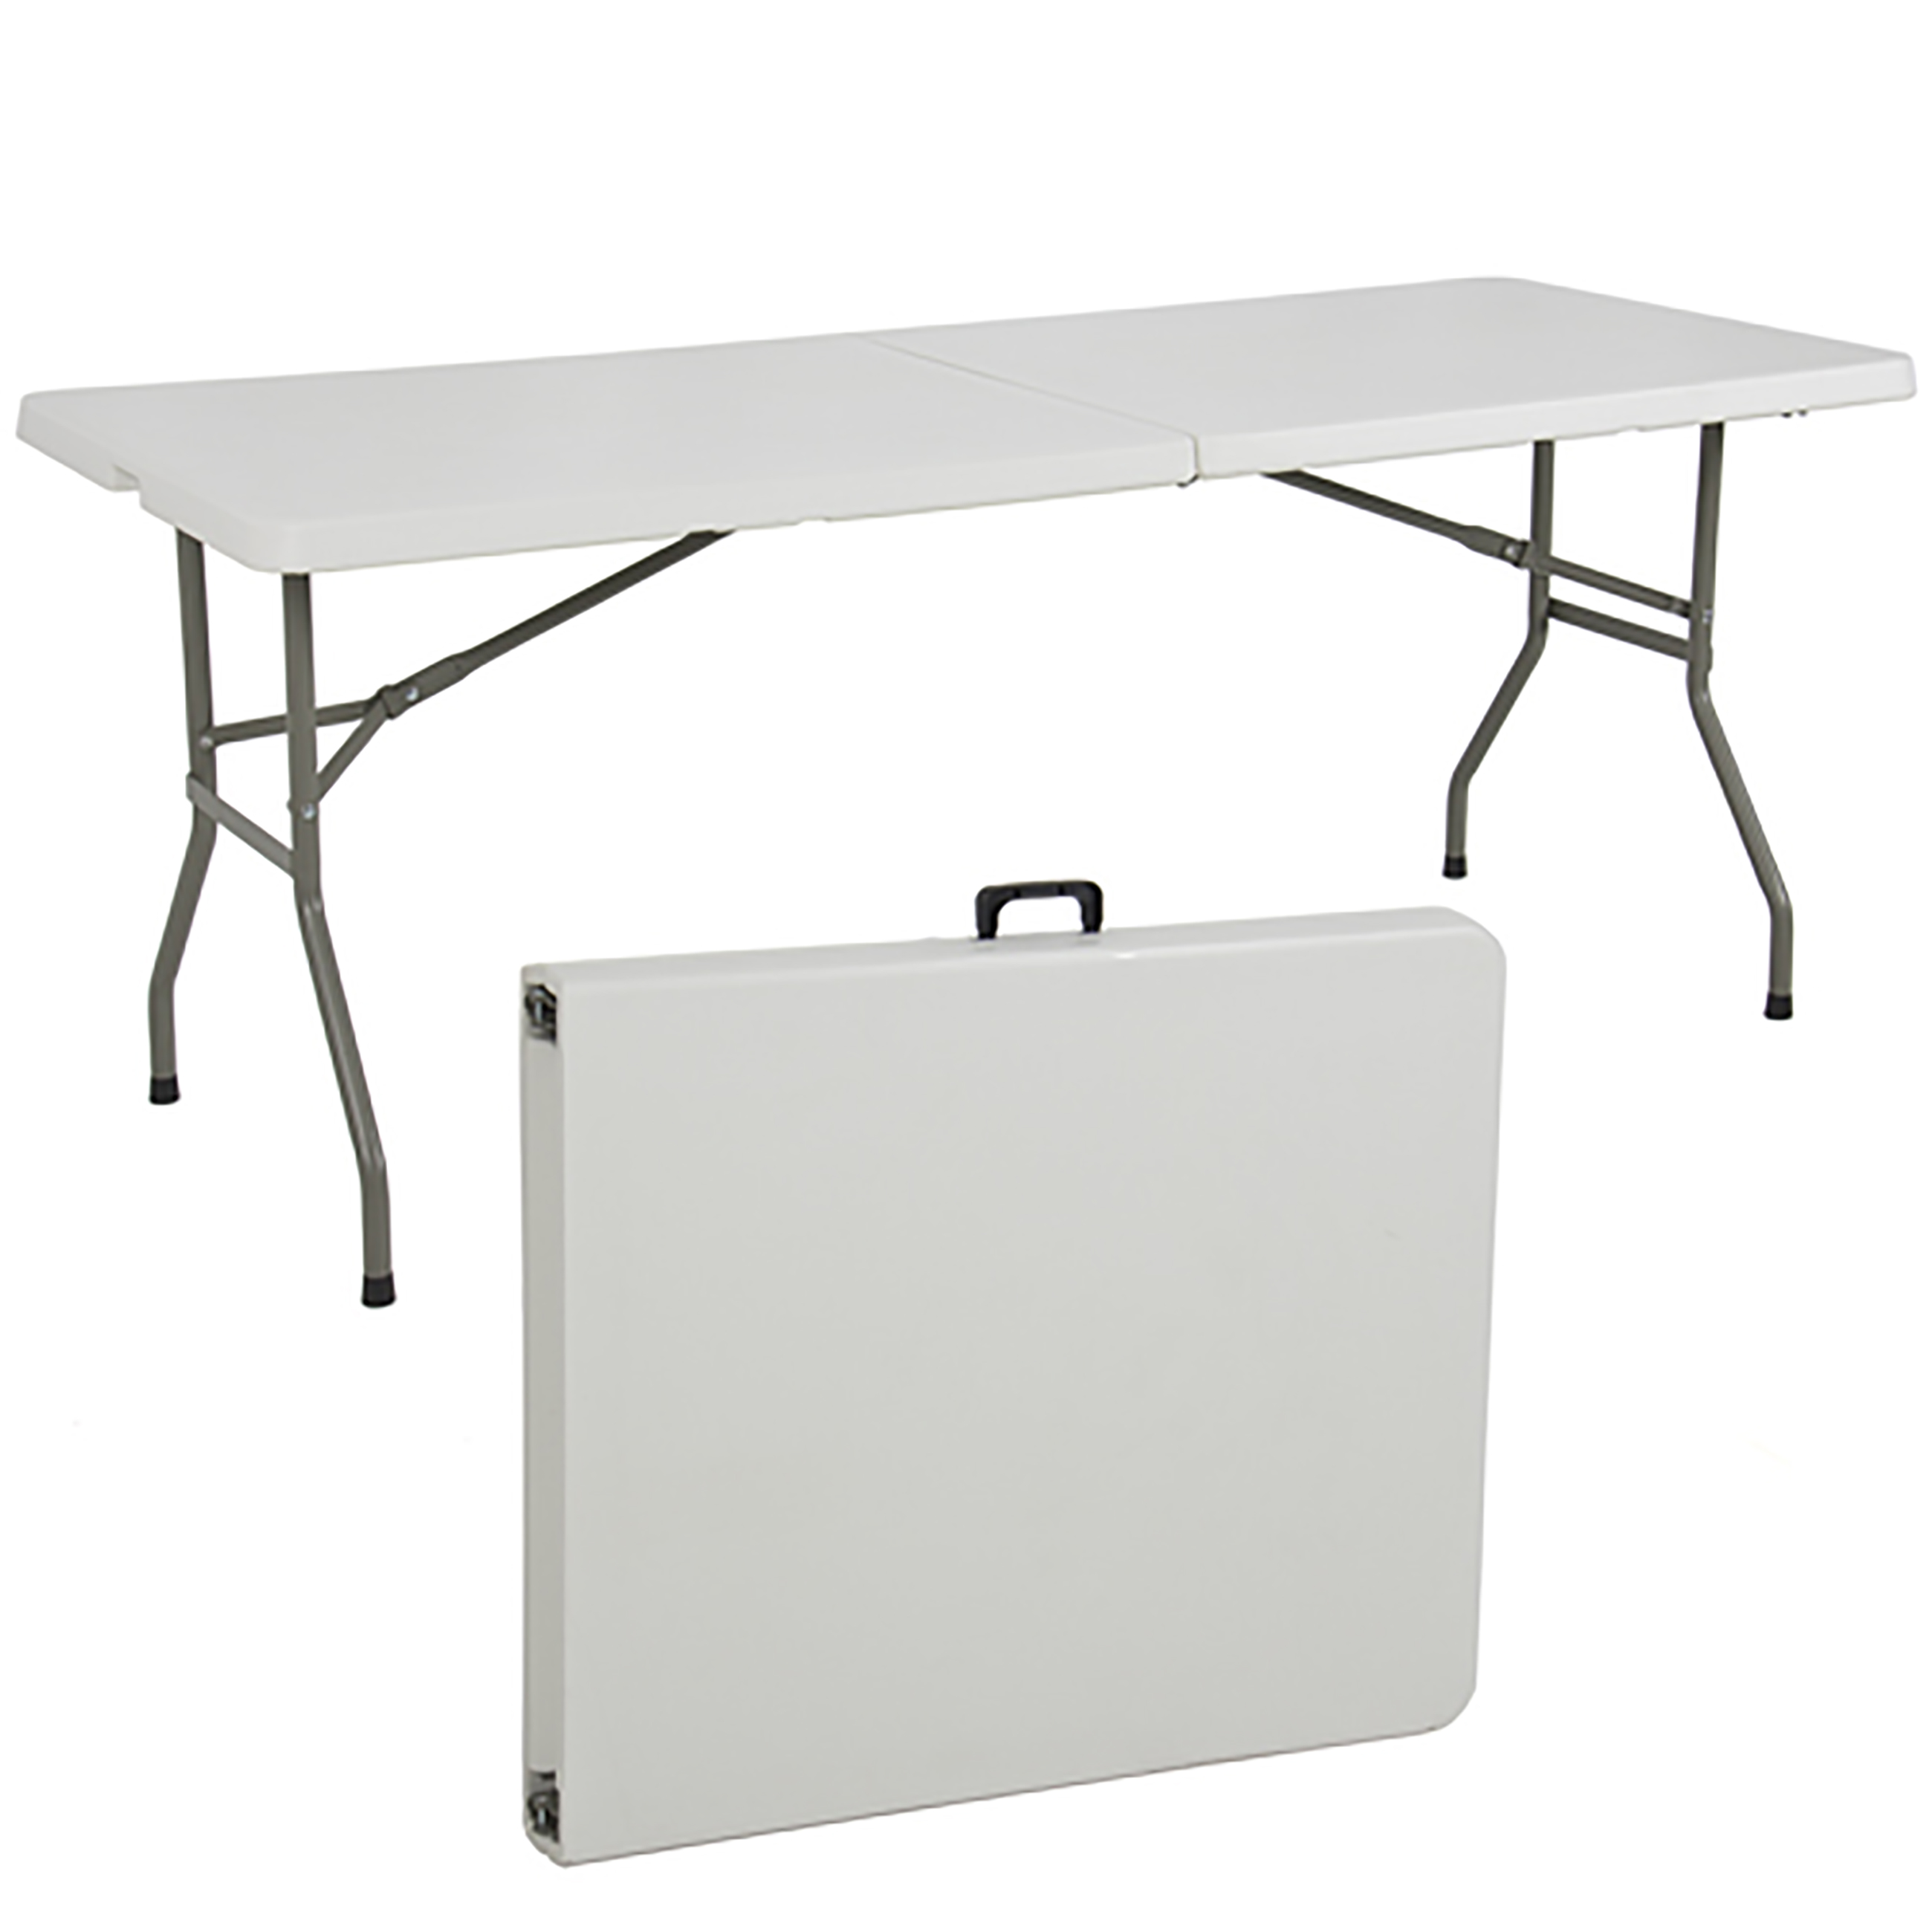 Outdoor Folding Portable Plastic Picnic Party Dining Camp Table w  Handle by Best Choice Products